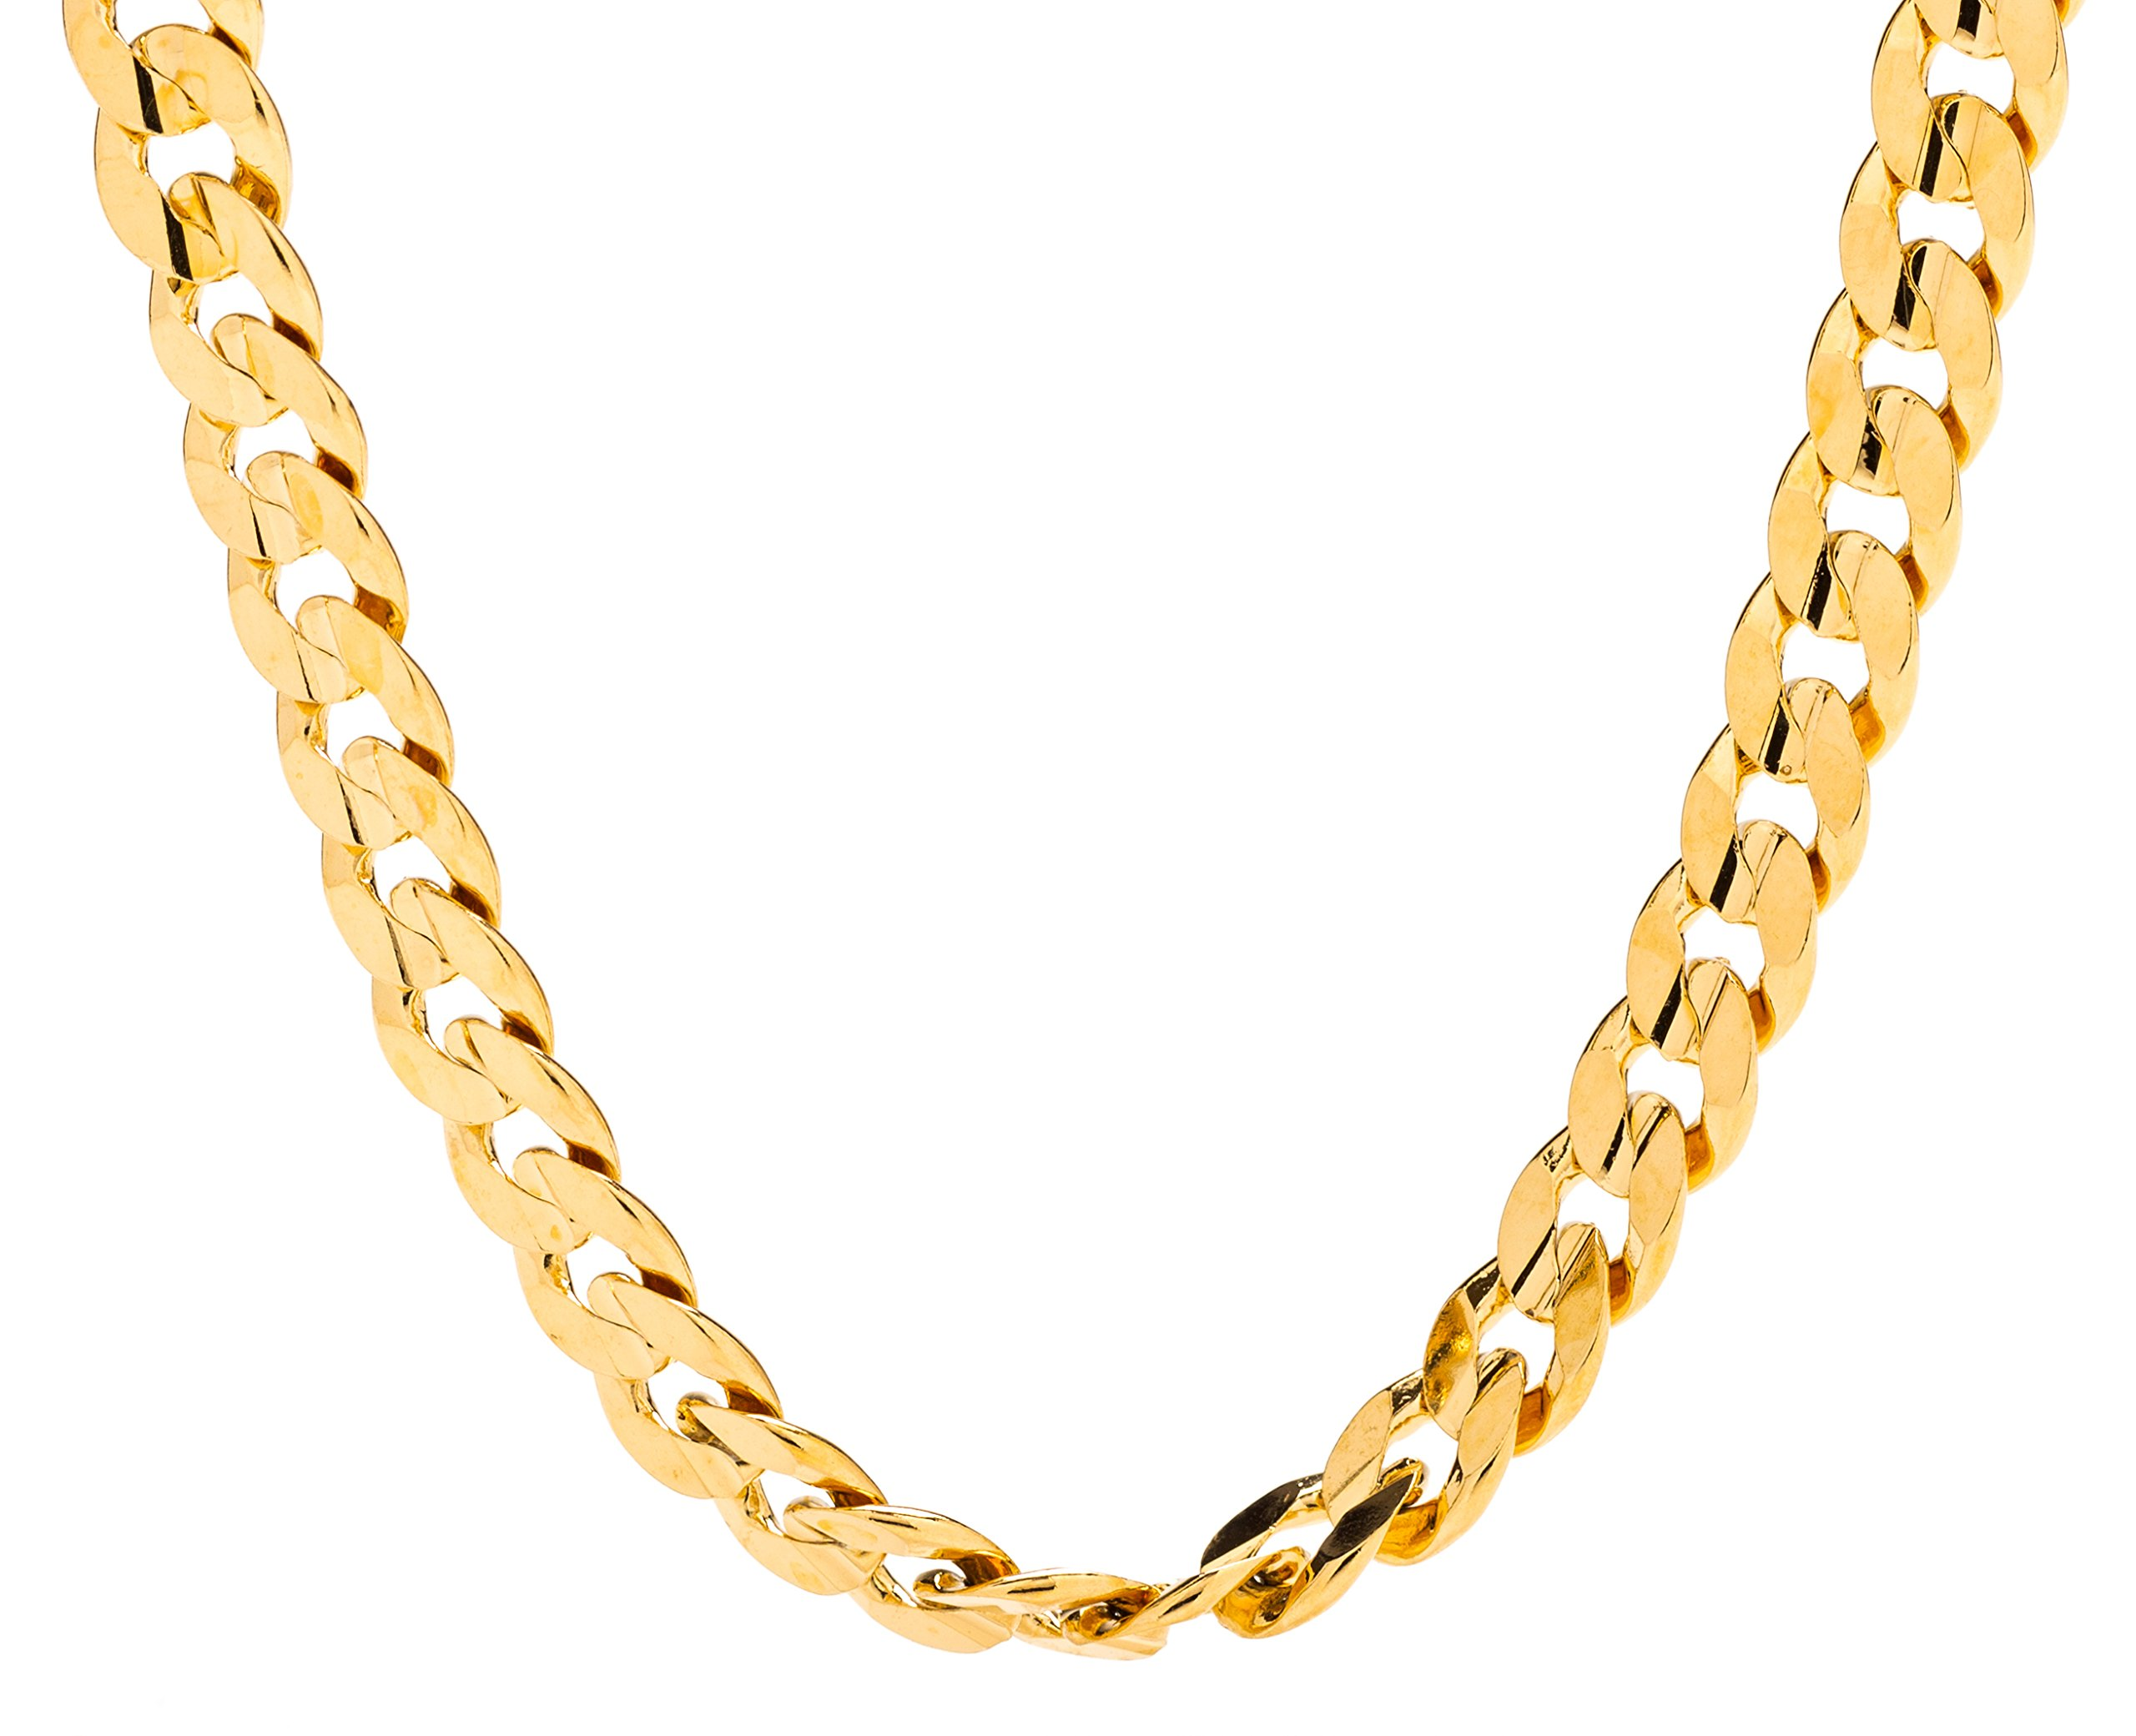 Lifetime Jewelry Cuban Link Chain, 6MM, 24K Gold Over Semi Precious Metals, Diamond Cut, Premium Fashion Jewelry Necklace, Designed to Resist Tarnishing, LIFETIME REPLACEMENT GUARANTEE, 24 Inches